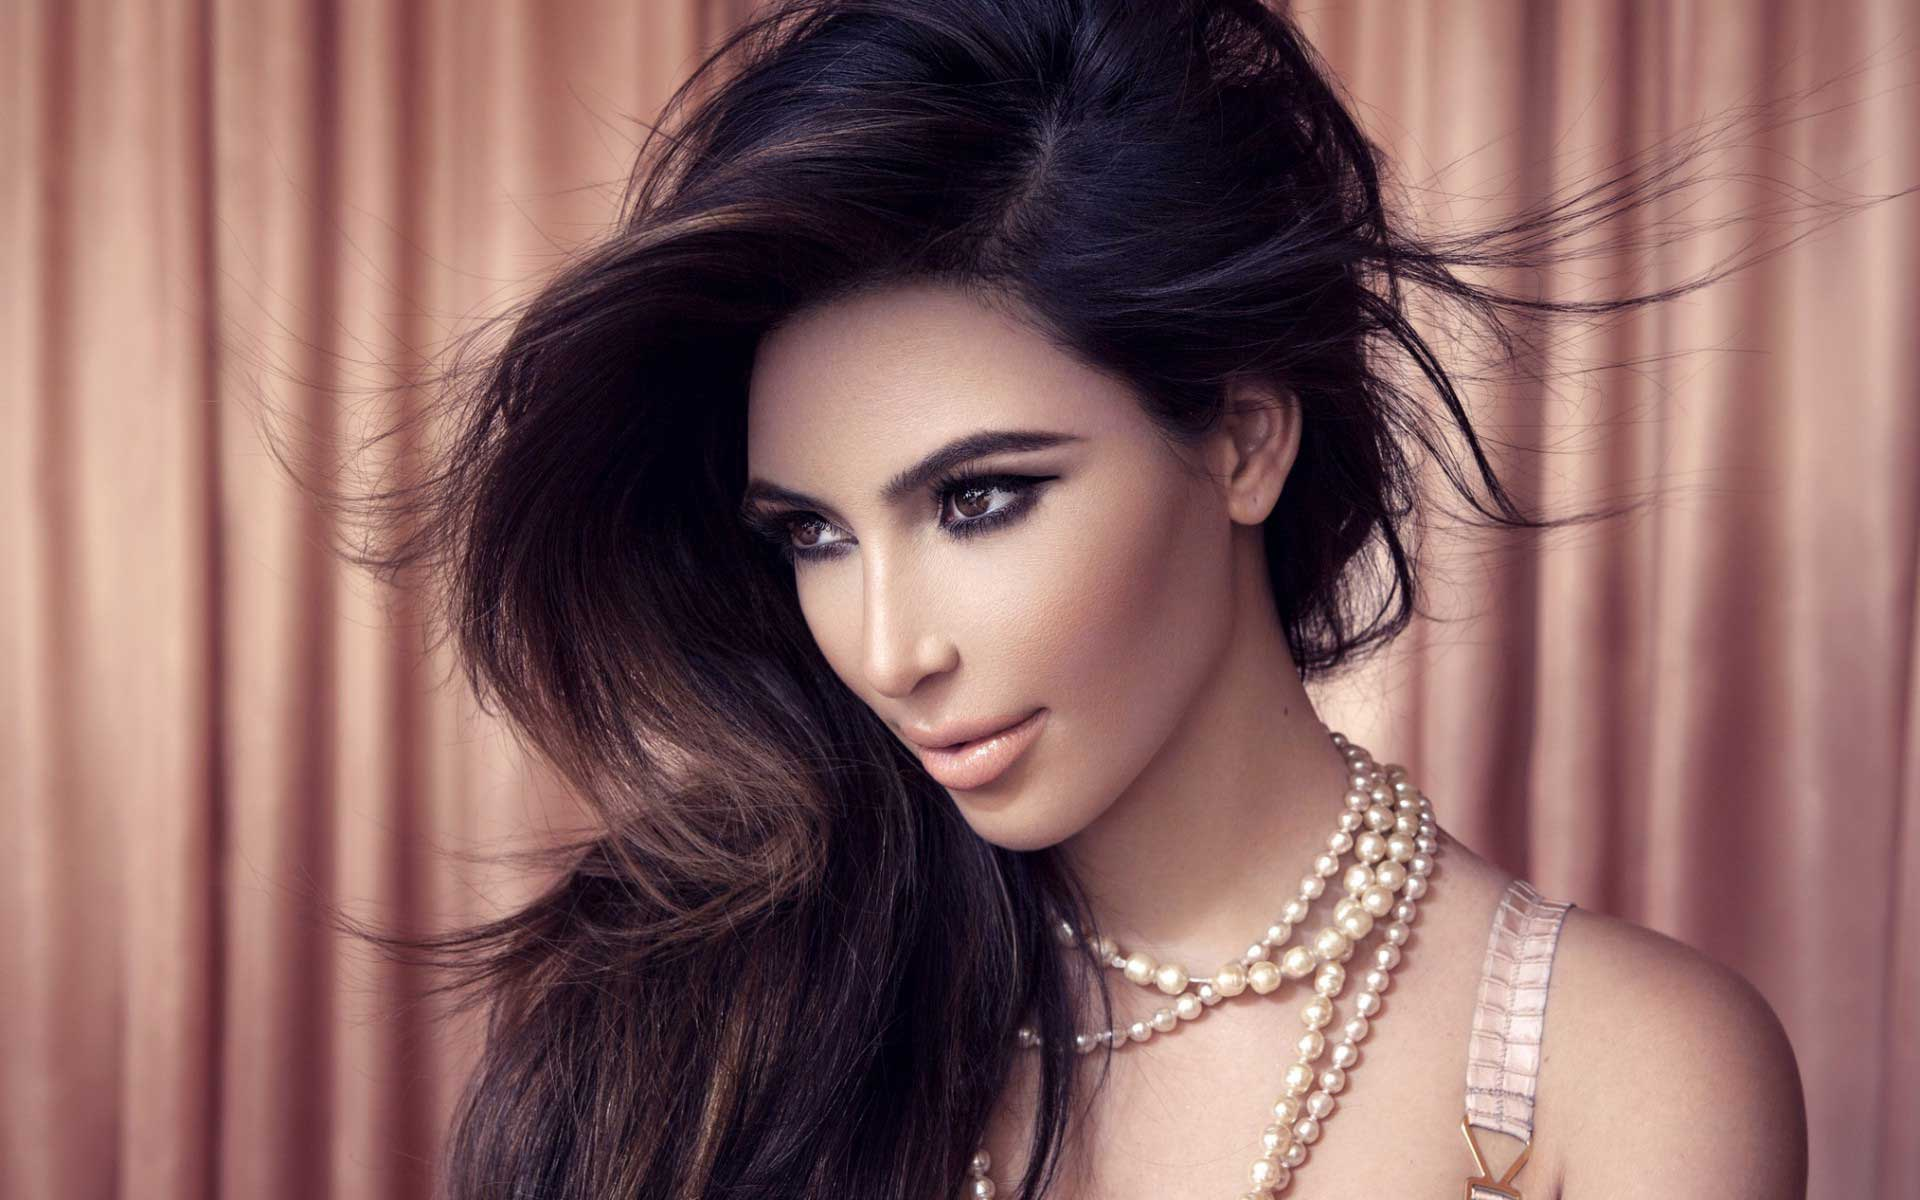 Kim Kardashian 2014   Wallpaper High Definition High 1920x1200